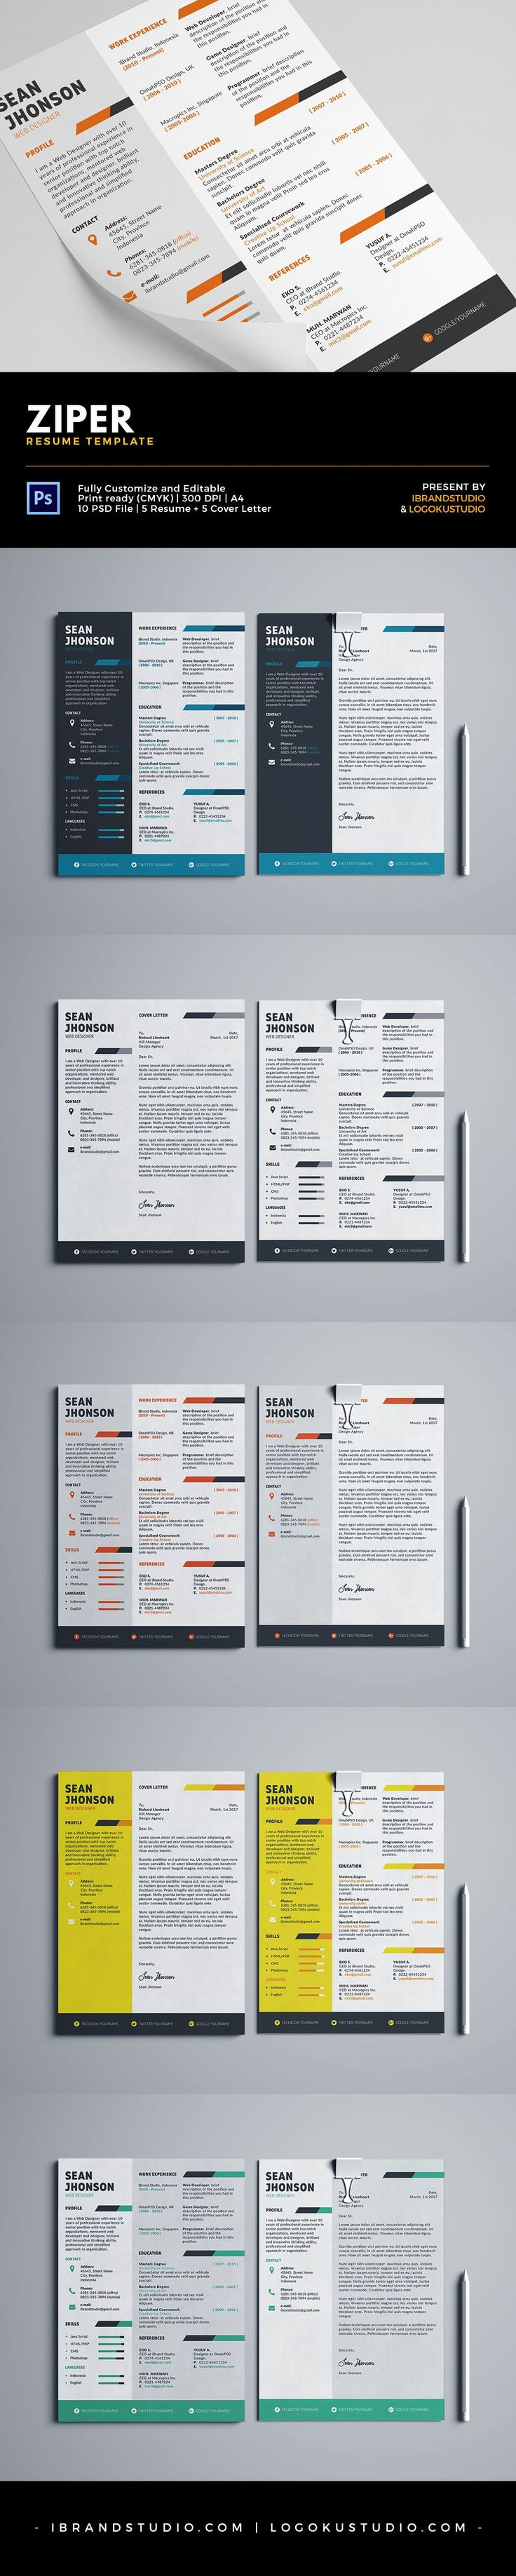 how to write a perfect cover letter%0A Free Ziper Resume Template and Cover Letter    Styles  PSD